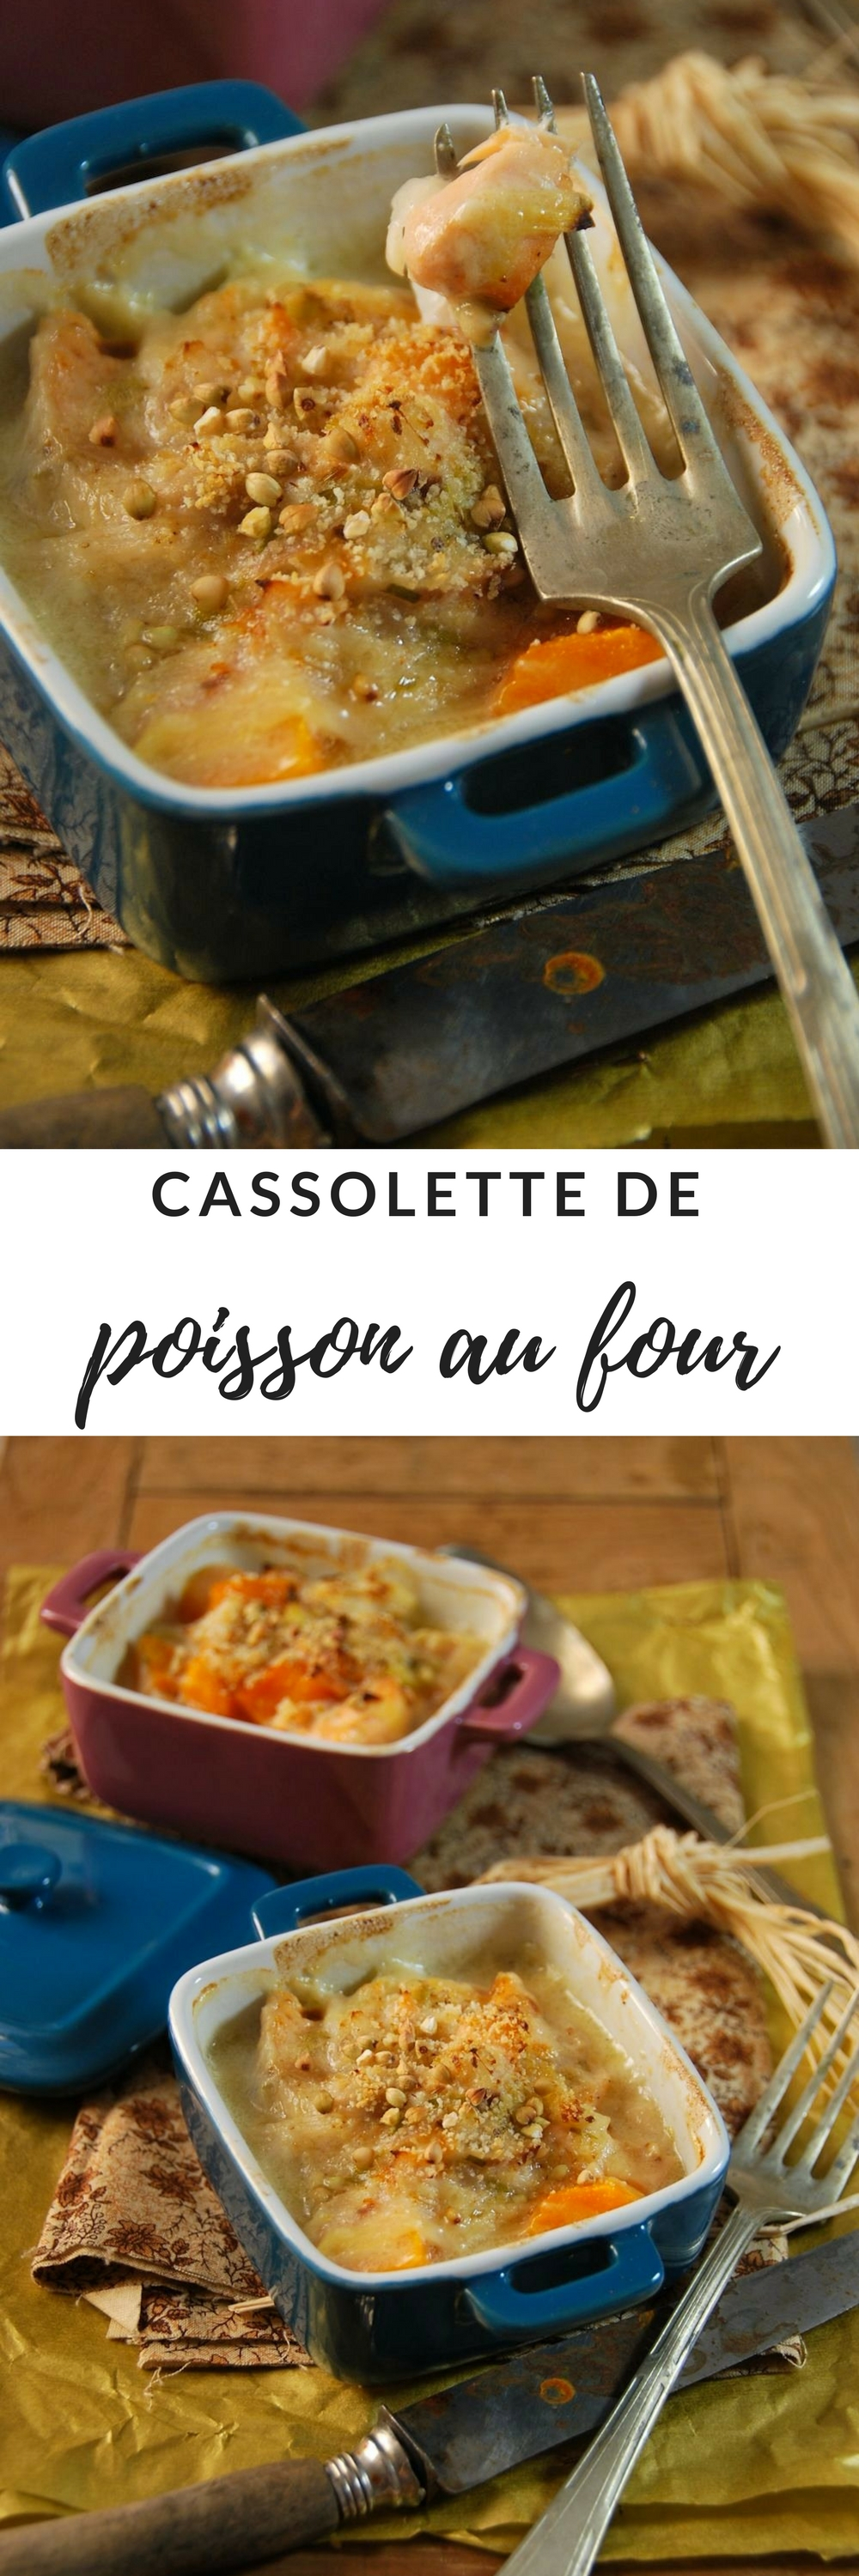 cassolette poisson au four